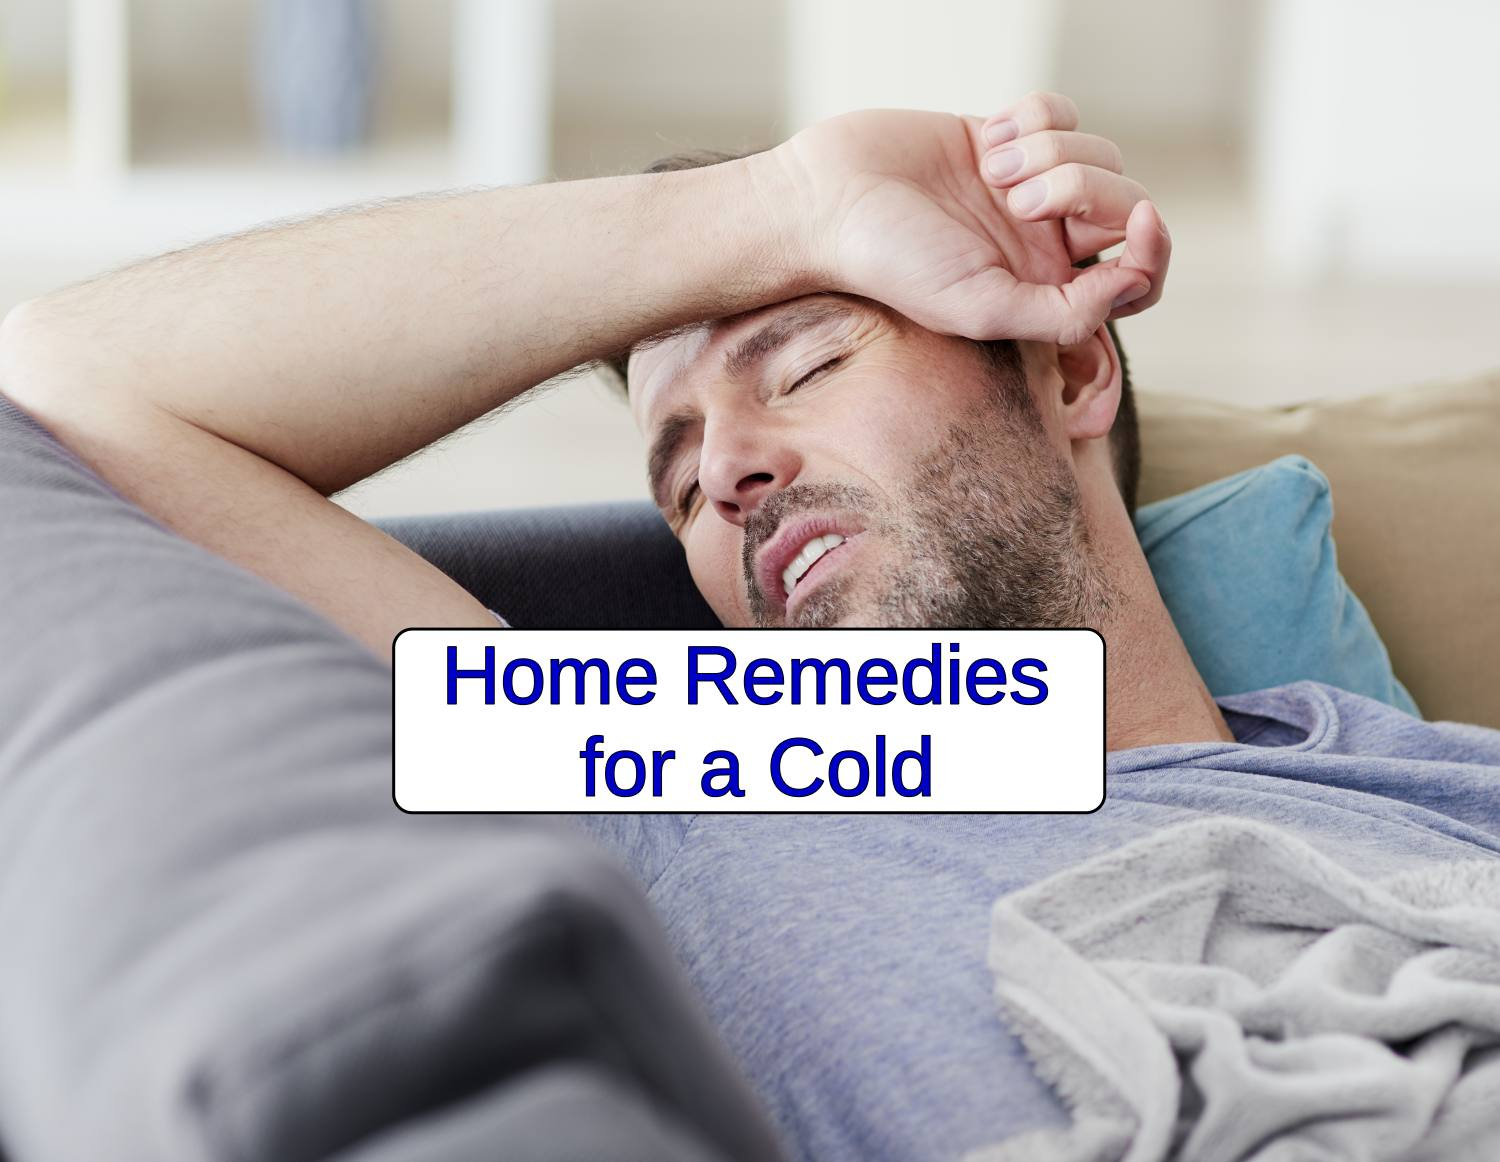 10 Home Remedies for a Cold